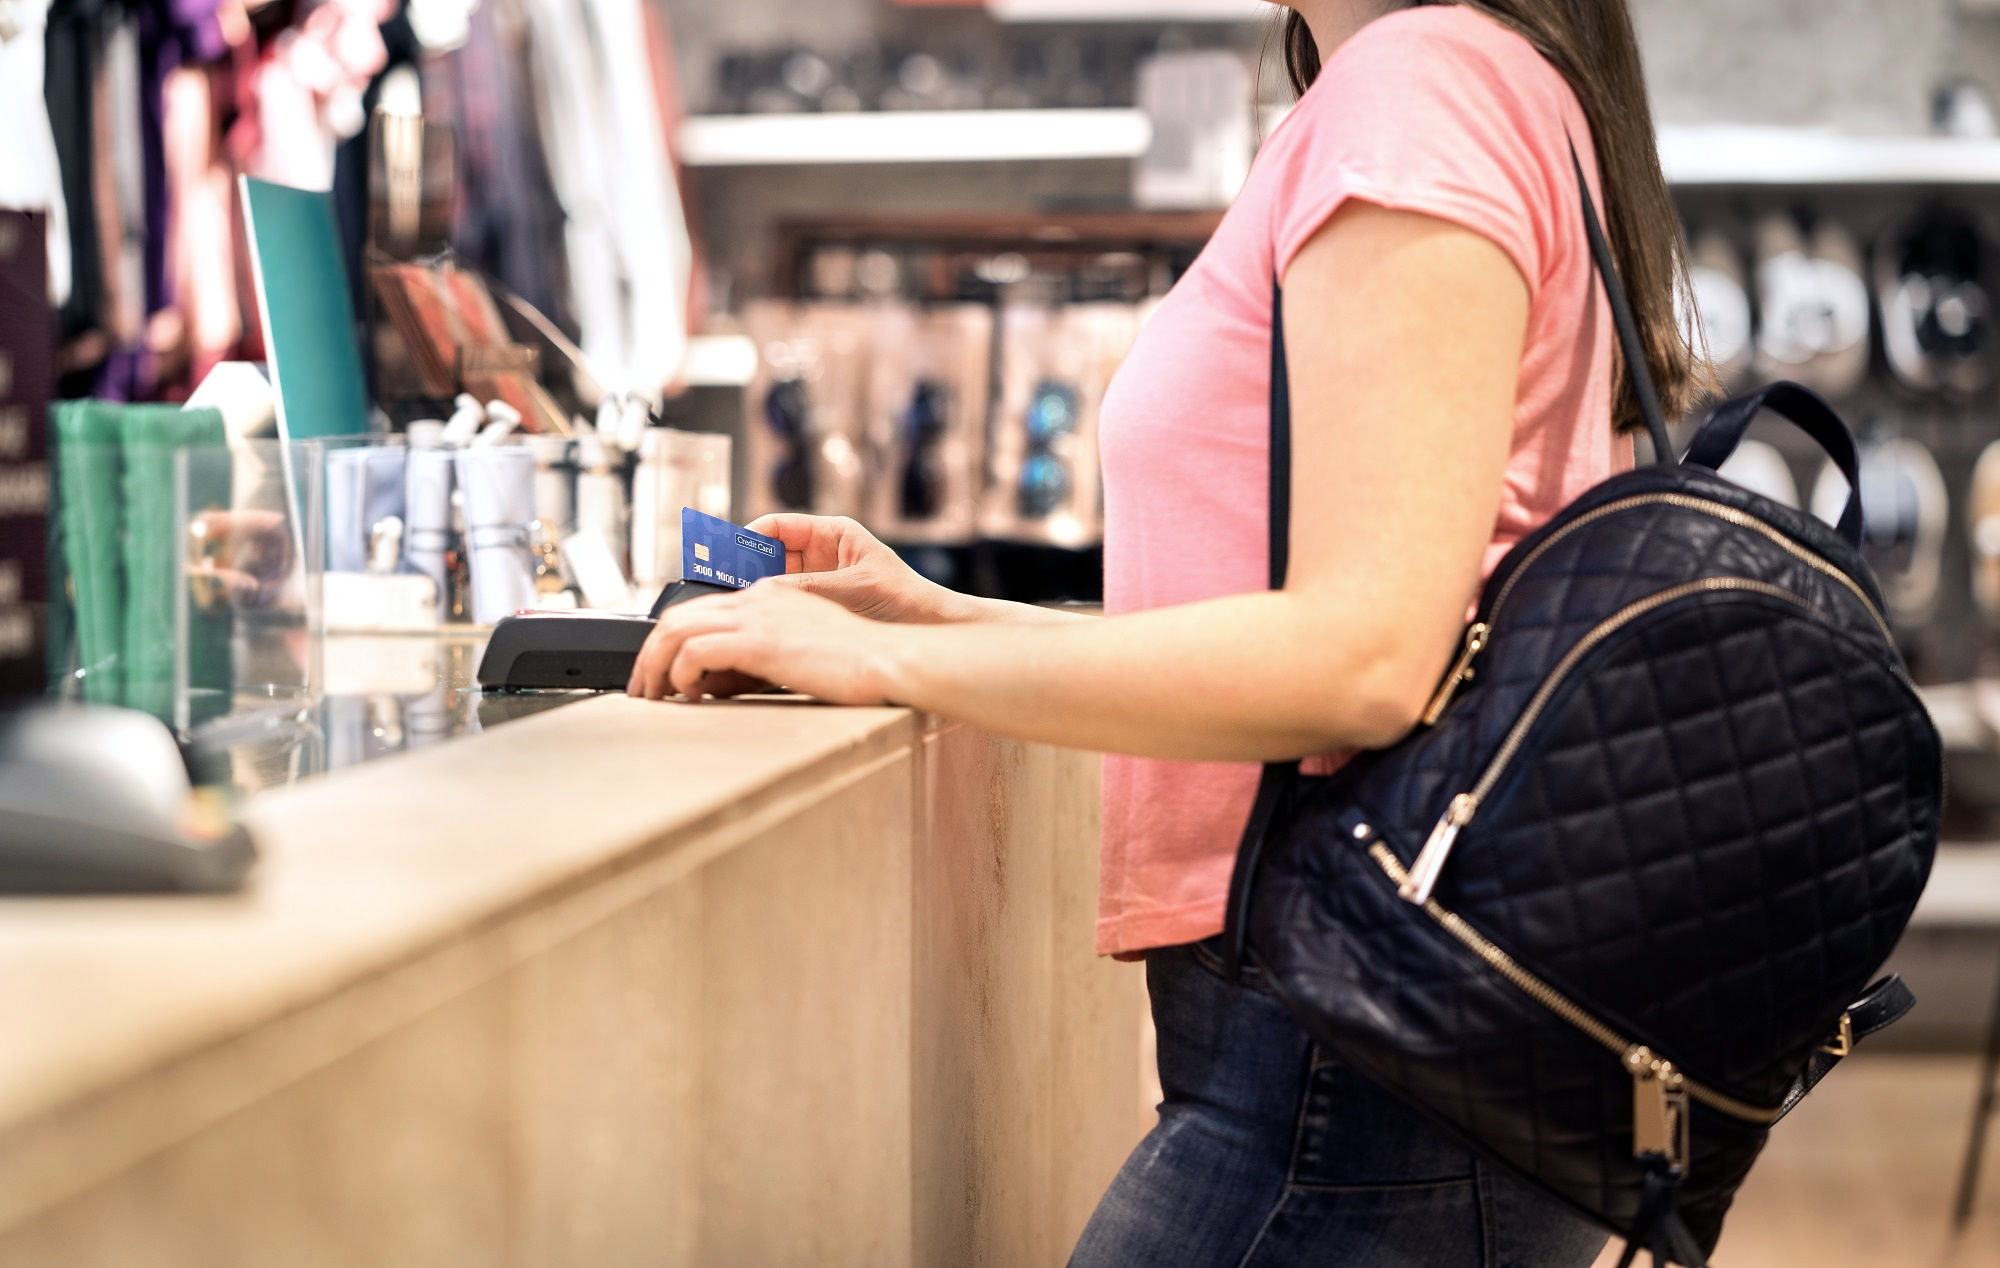 Woman at checkout in fashion store paying with credit card. Customer using payment terminal machine. Standing at counter. Buying and shopping for clothes. Bank card graphics are made up.